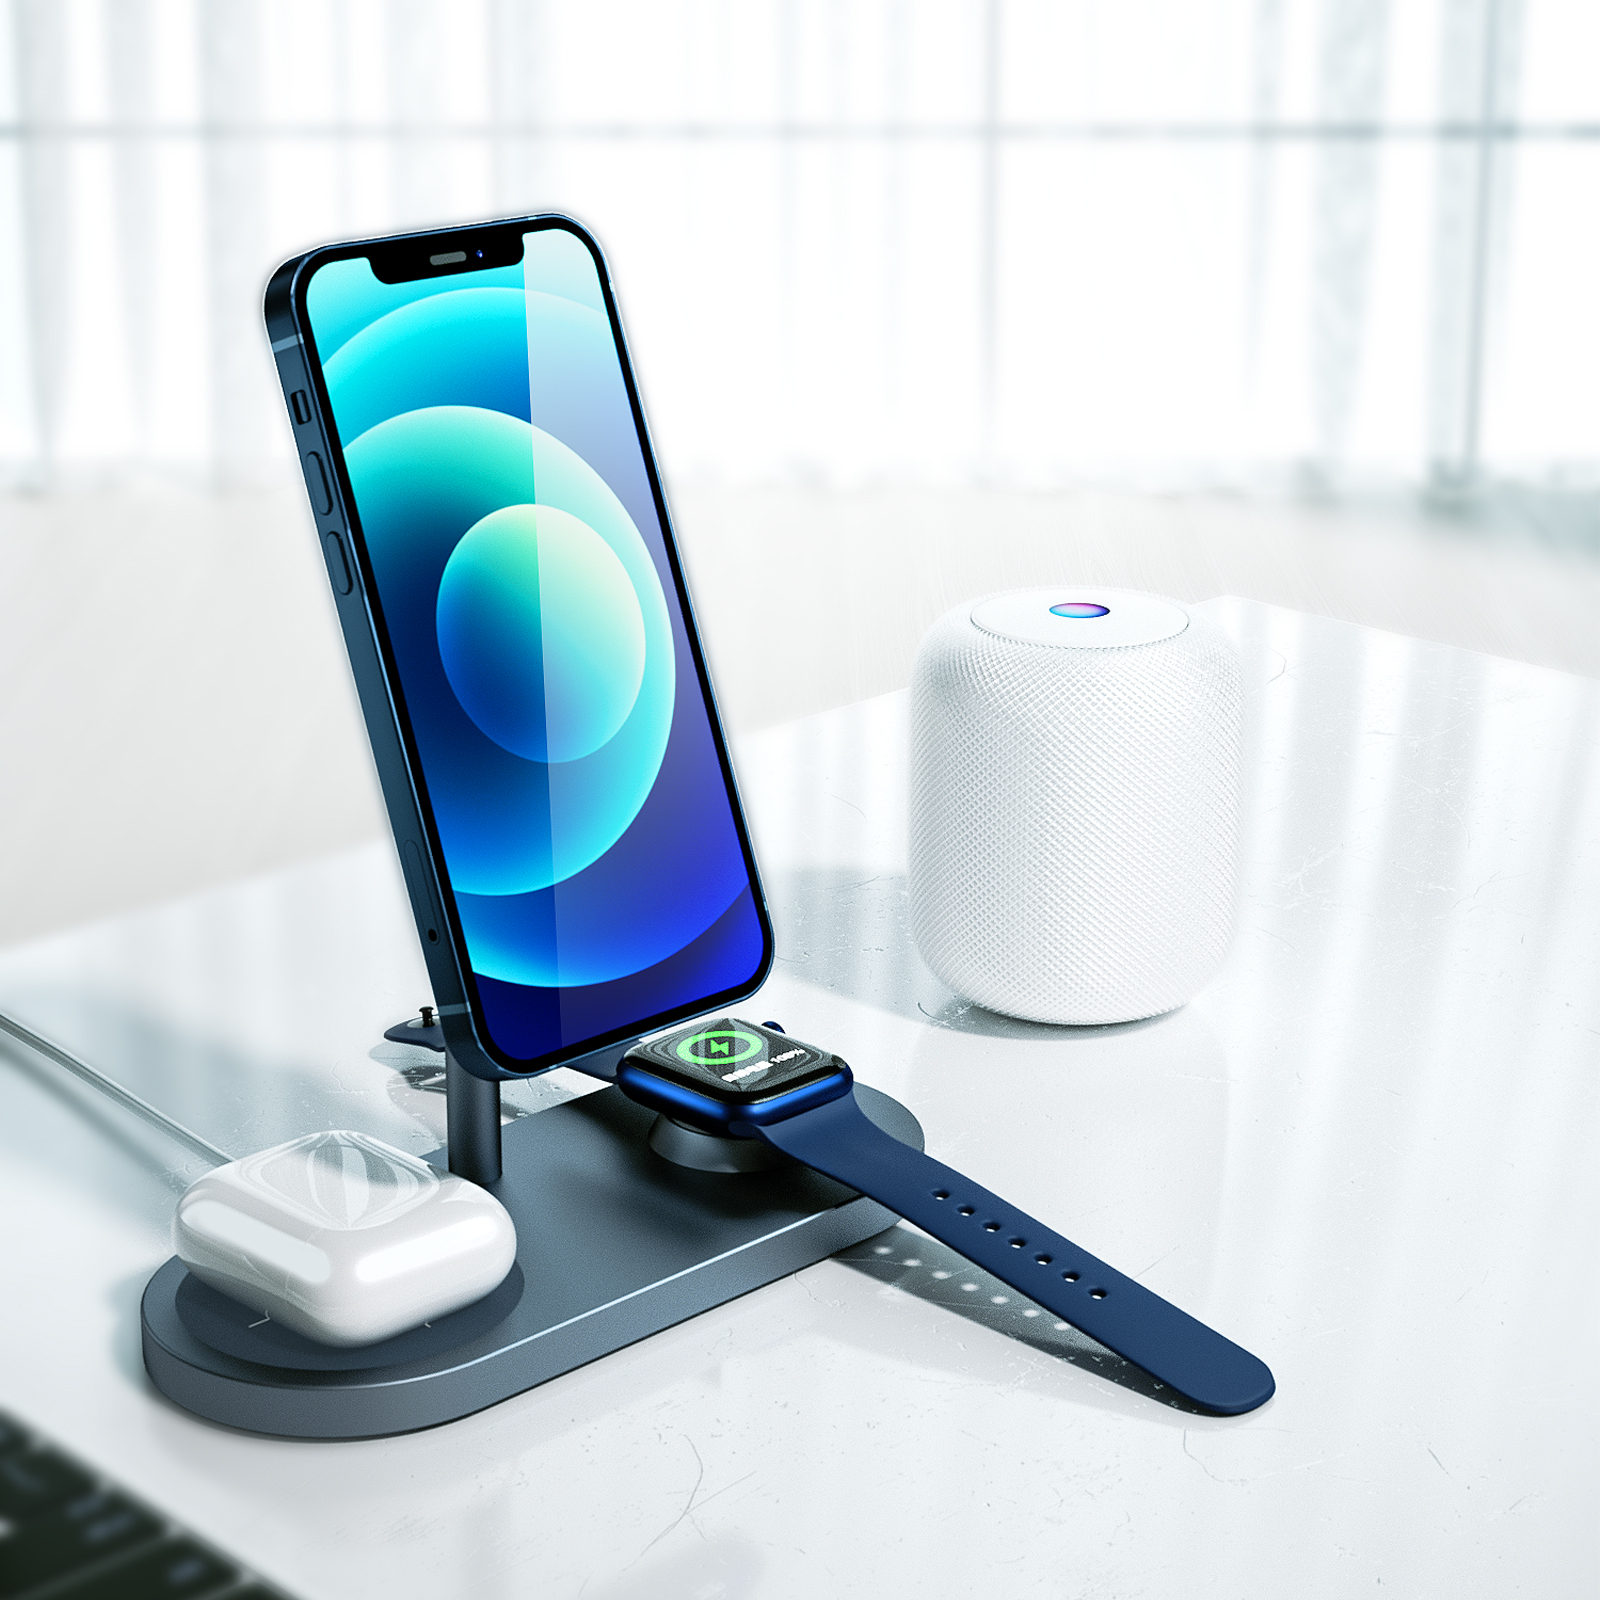 WiWU X23 3 in 1 Power Air Wireless Charger